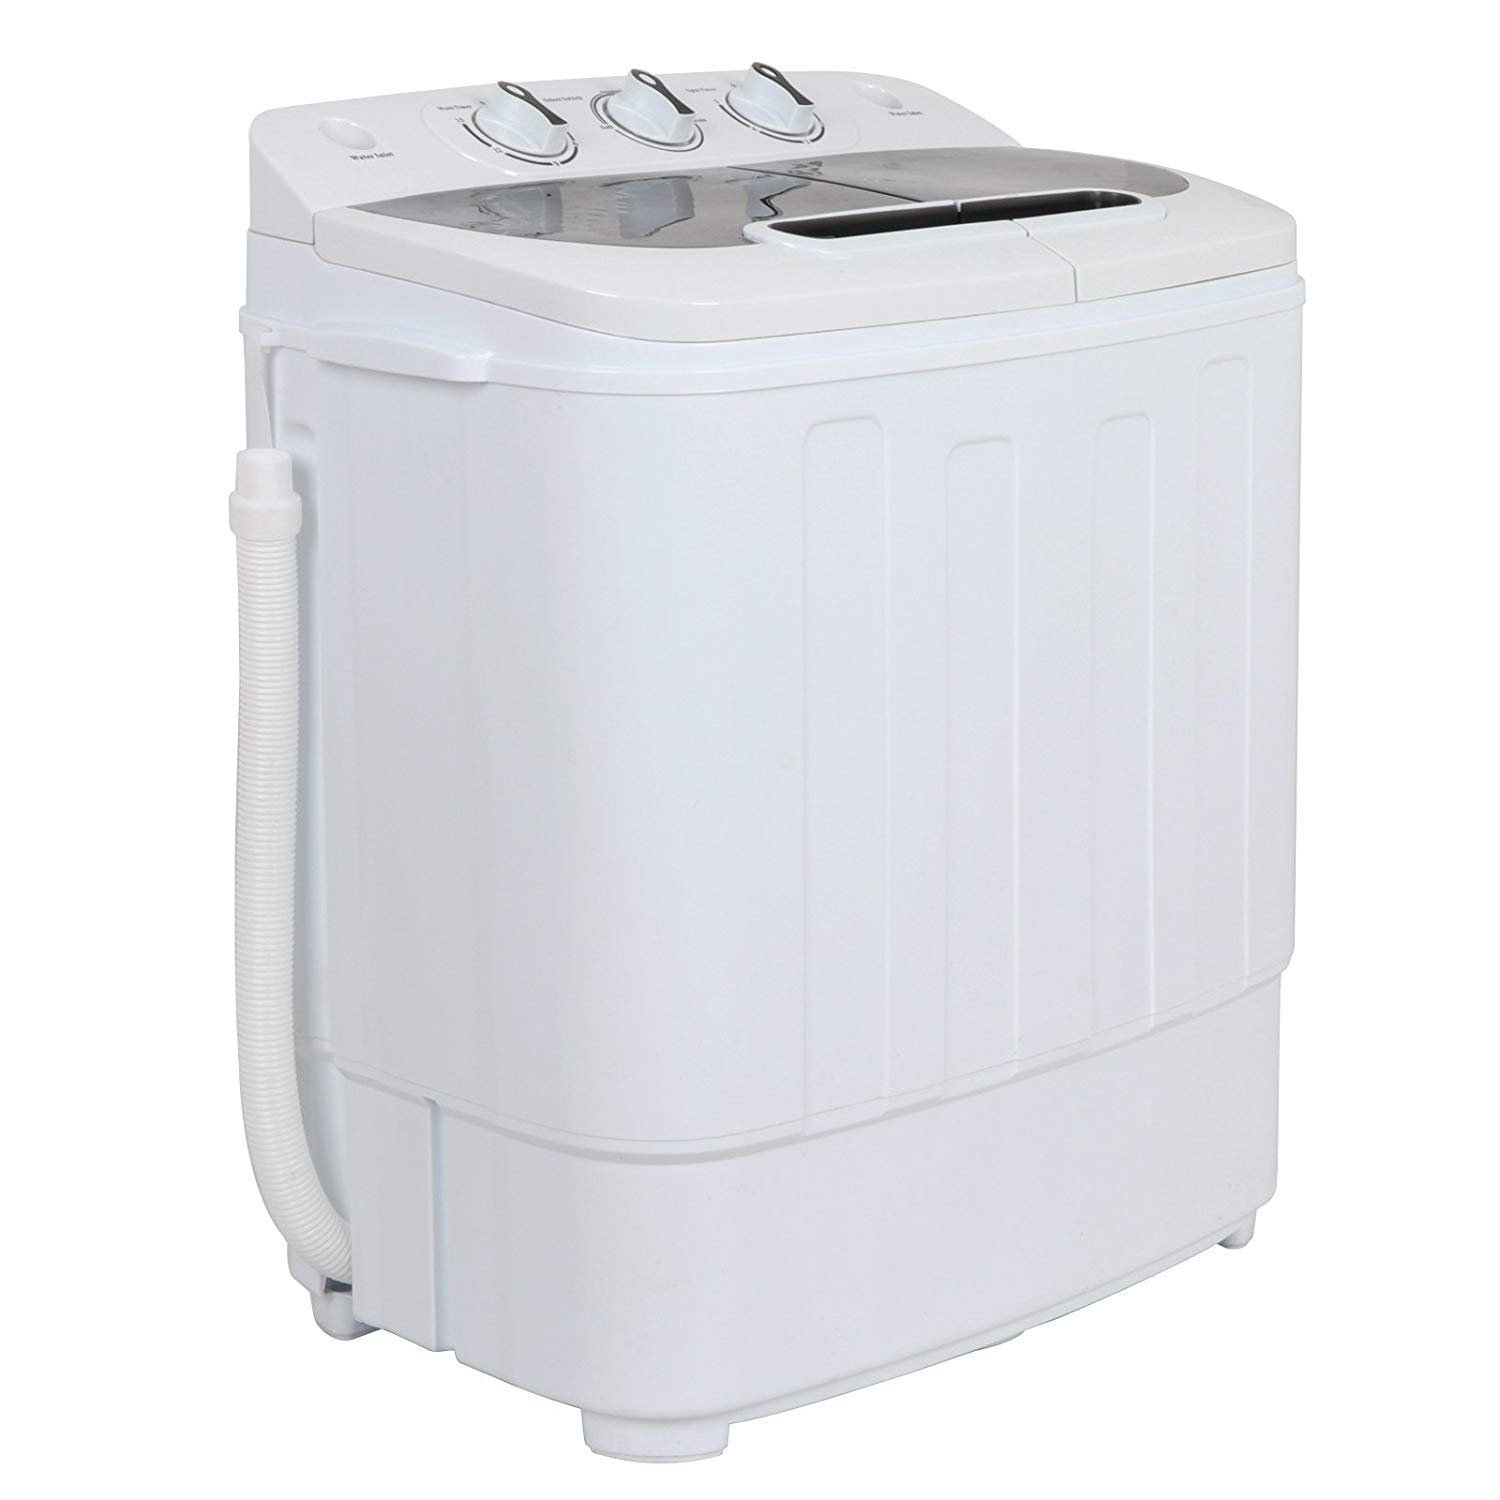 Portable Washer And Dryer Combo For Apartments: Washer And Dryer Combo For Apartment RV Portable Mini